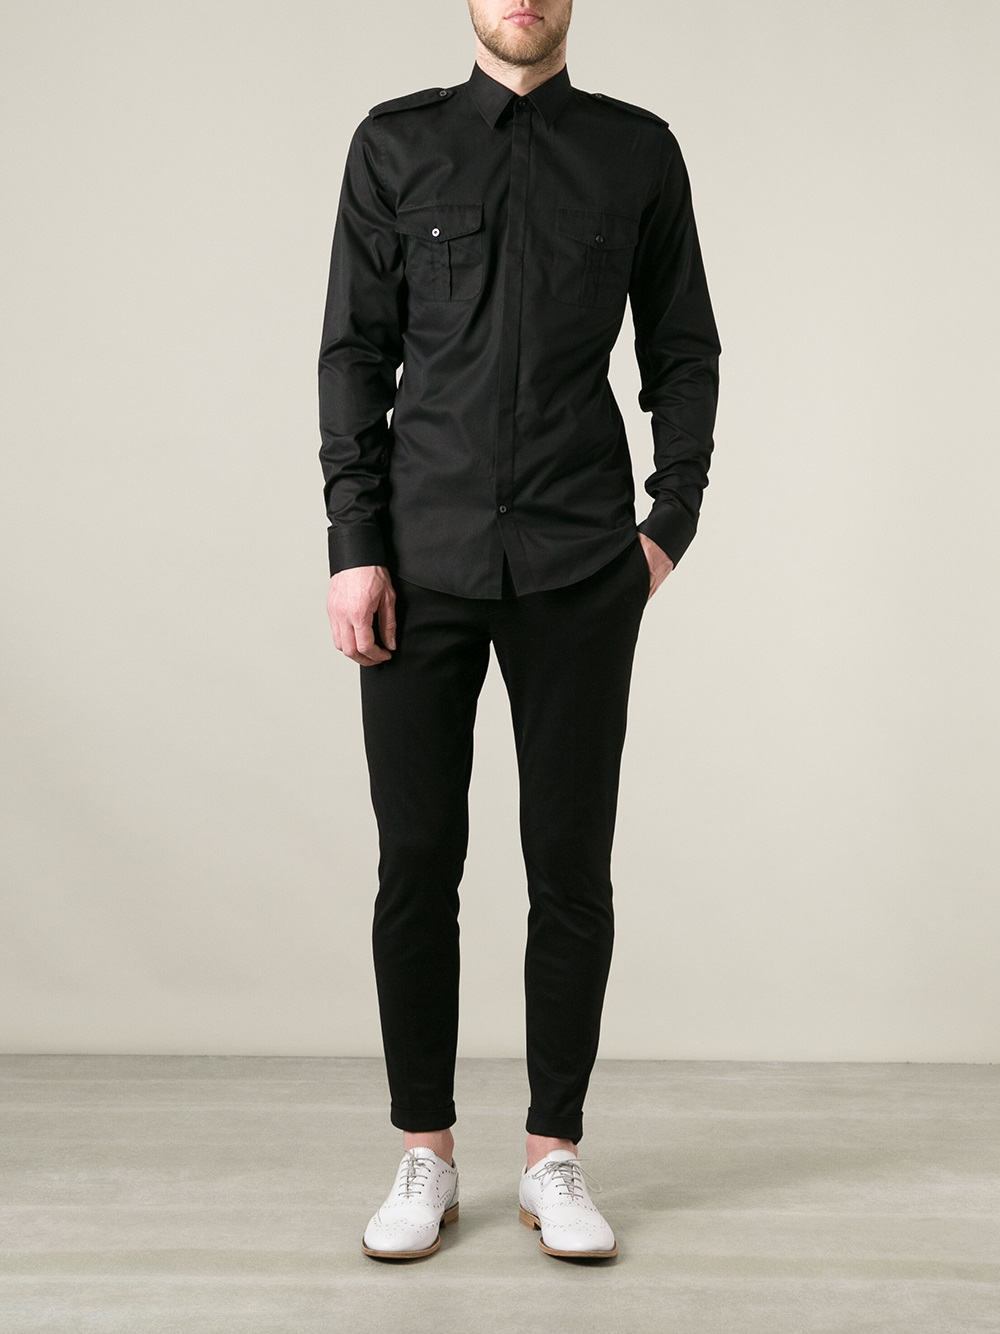 Lyst - Gucci Military Style Shirt in Black for Men